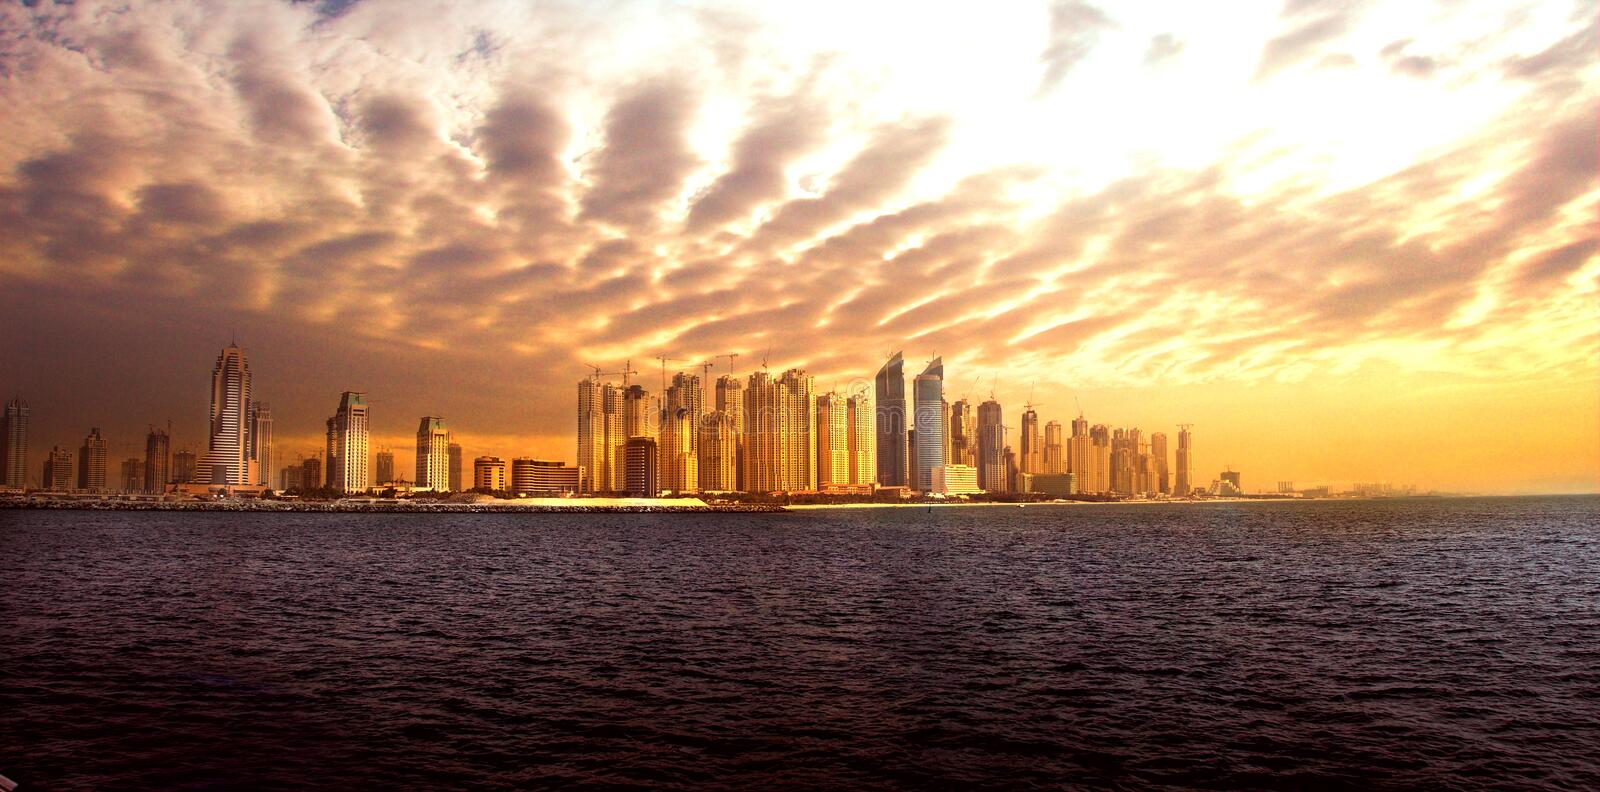 Dubai Skyline. A seaview of the Dubai skyline